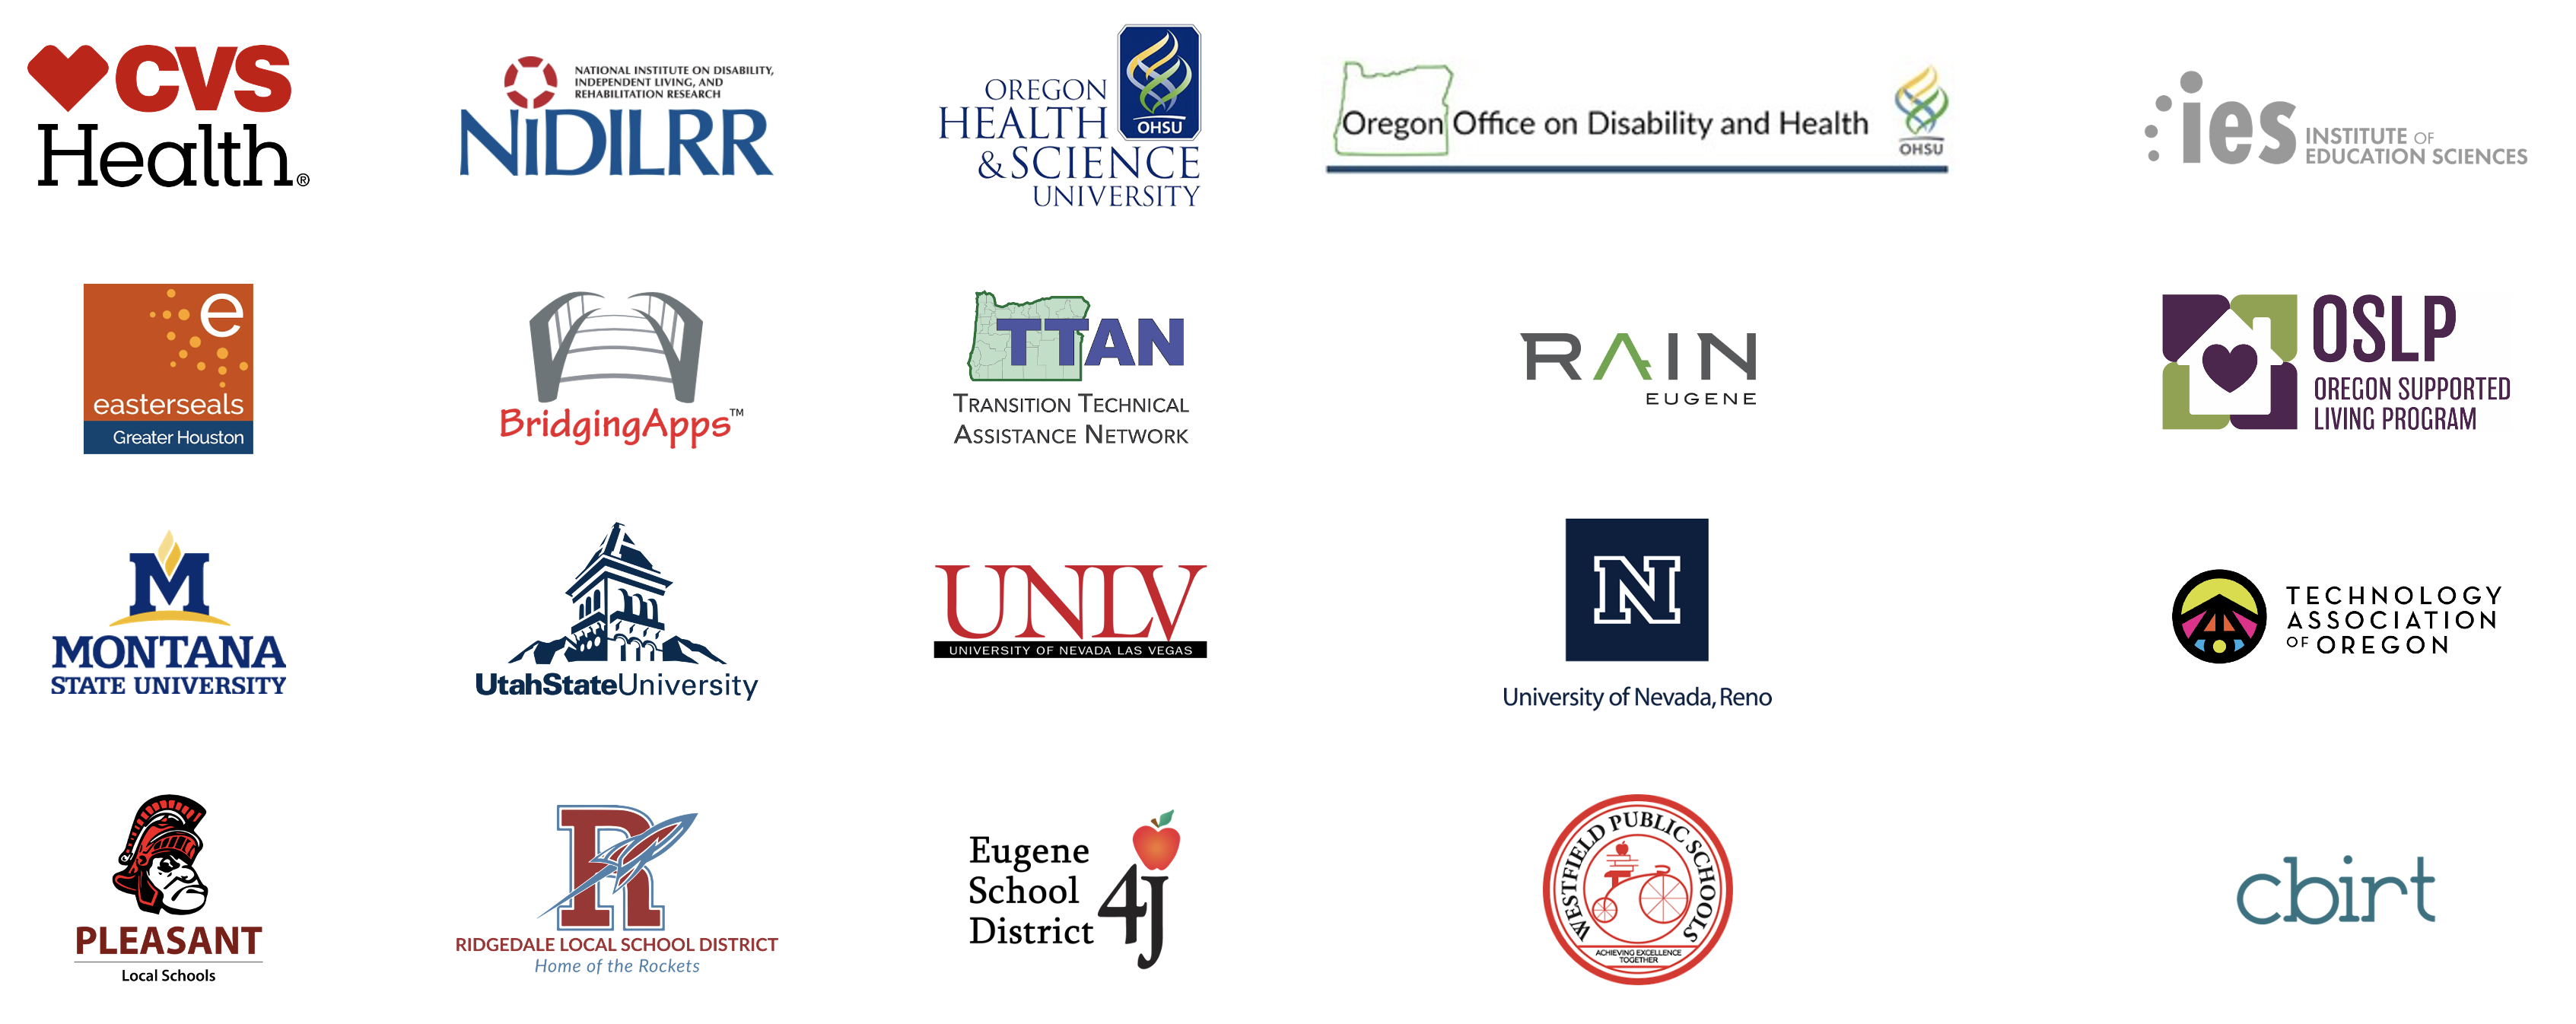 An Image showing logos of Cognitopia Partners, such as CVS Health, Oregon Health Science University, Easterseals, Universities, and school districts